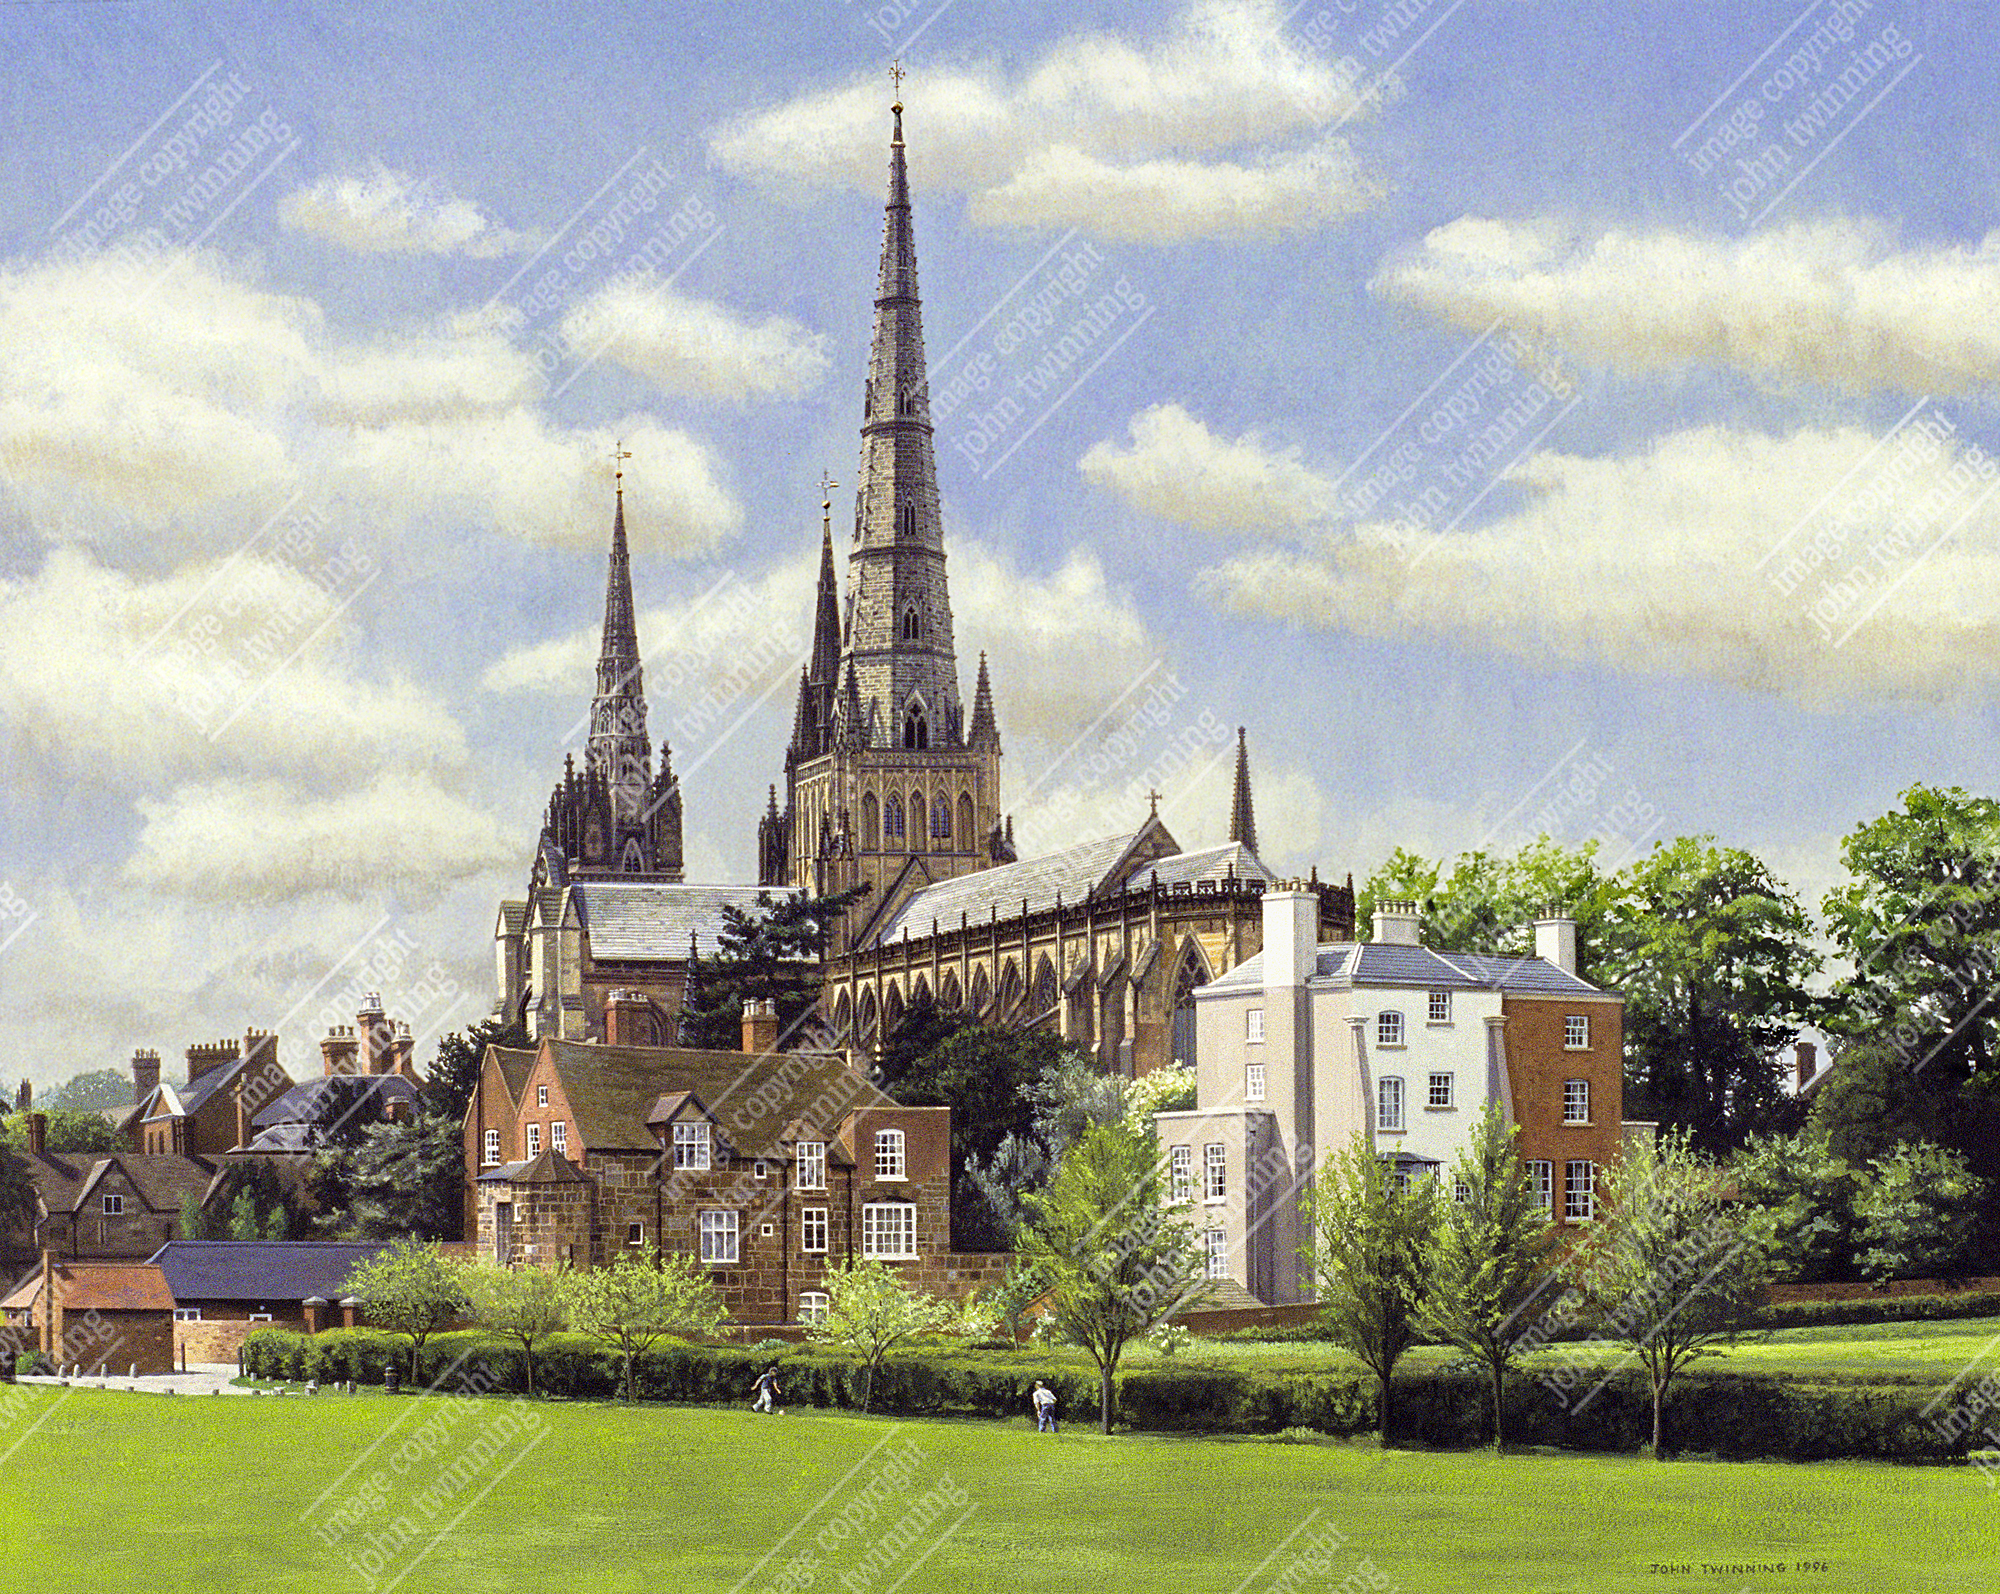 Lichfield Cathedral from Stowe Fields